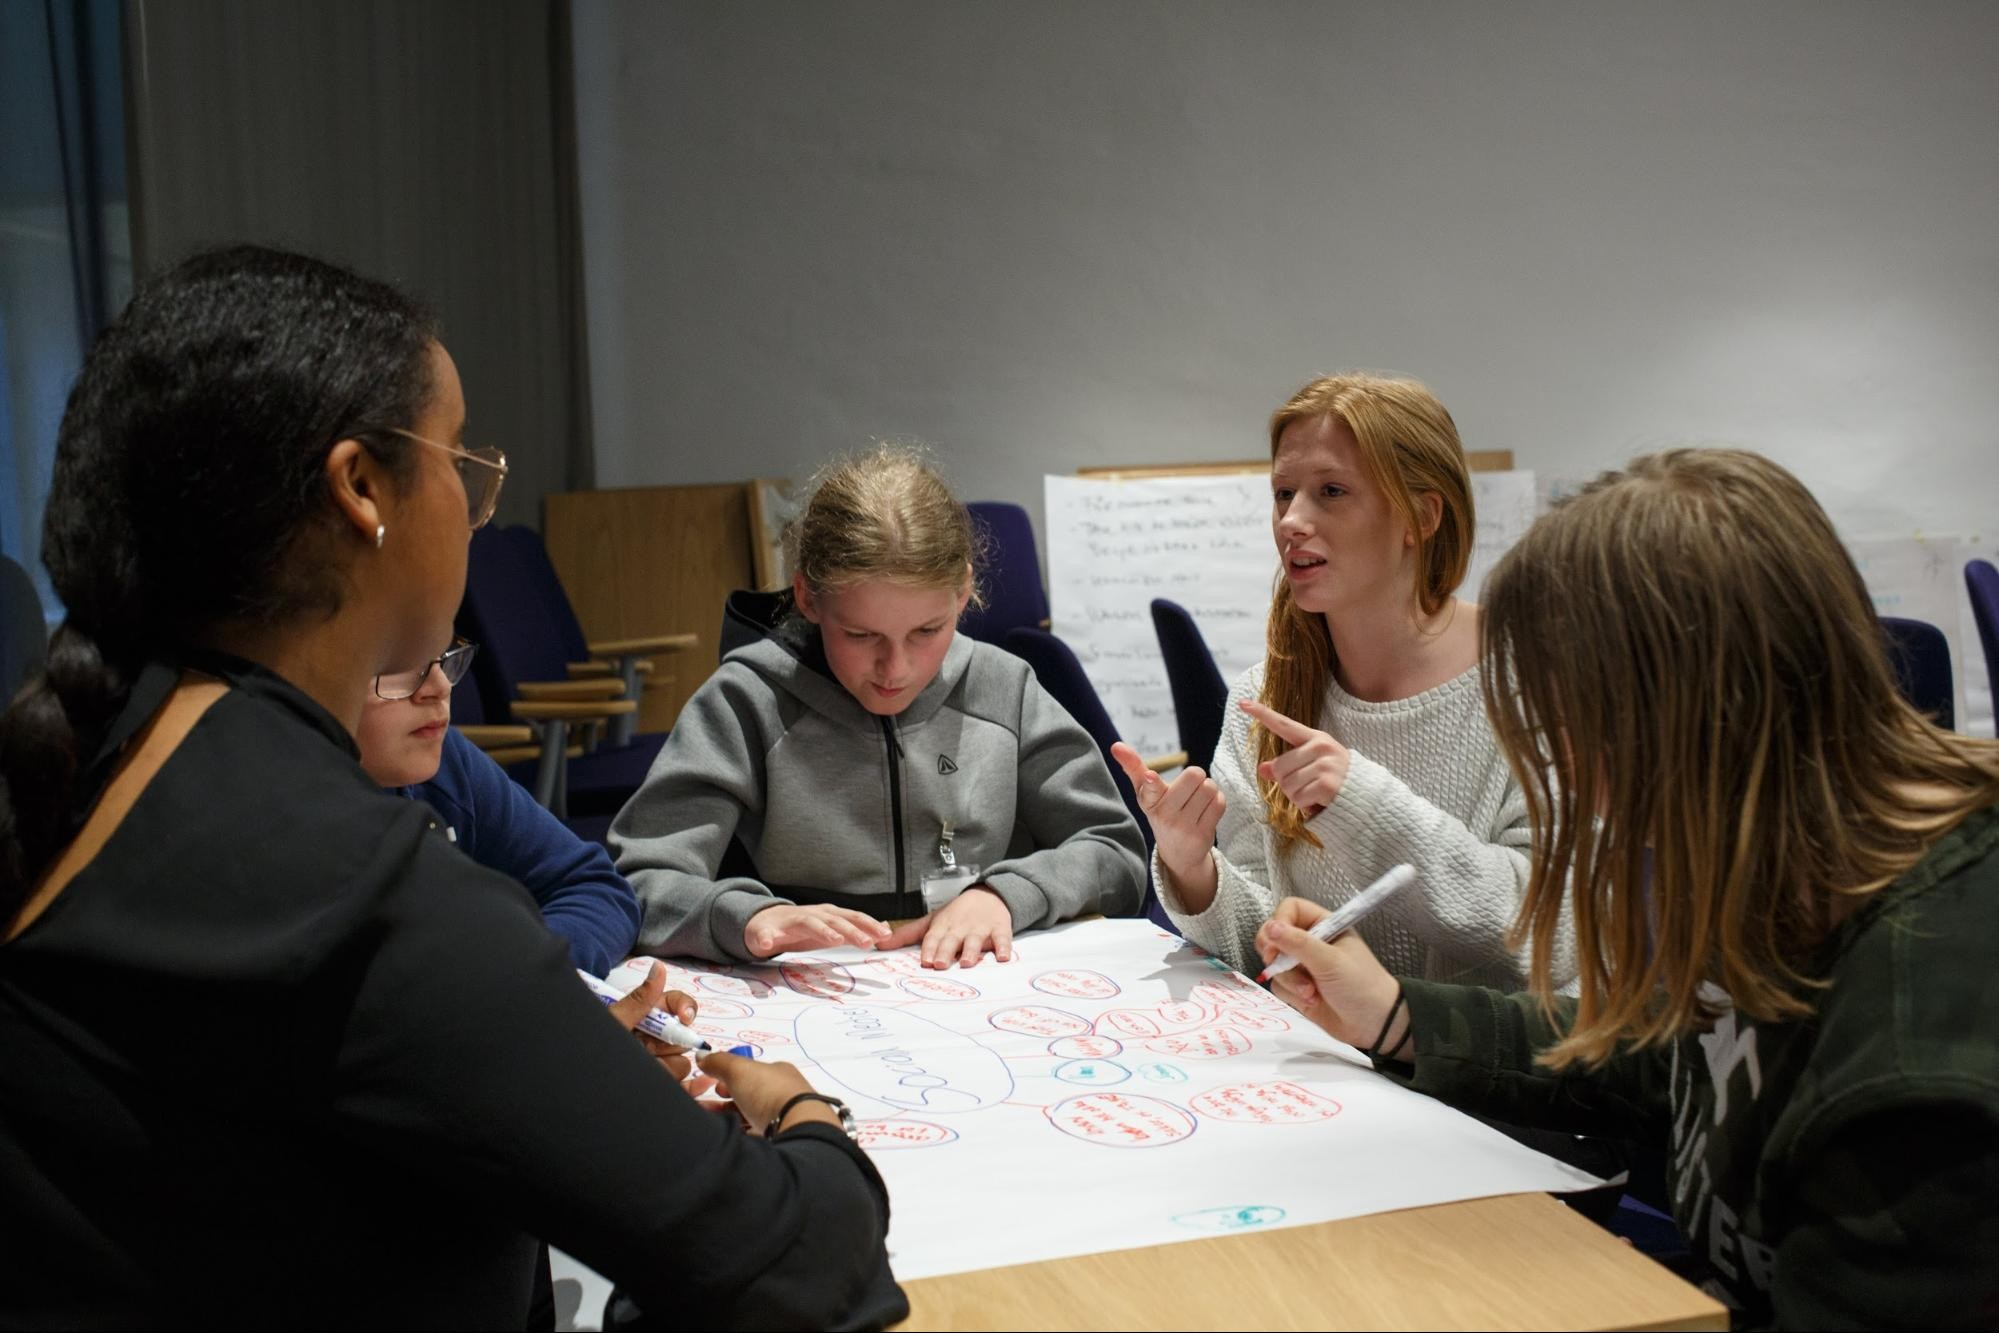 Teacher sits at table with students as the small group works on creating a mind map in the classroom.